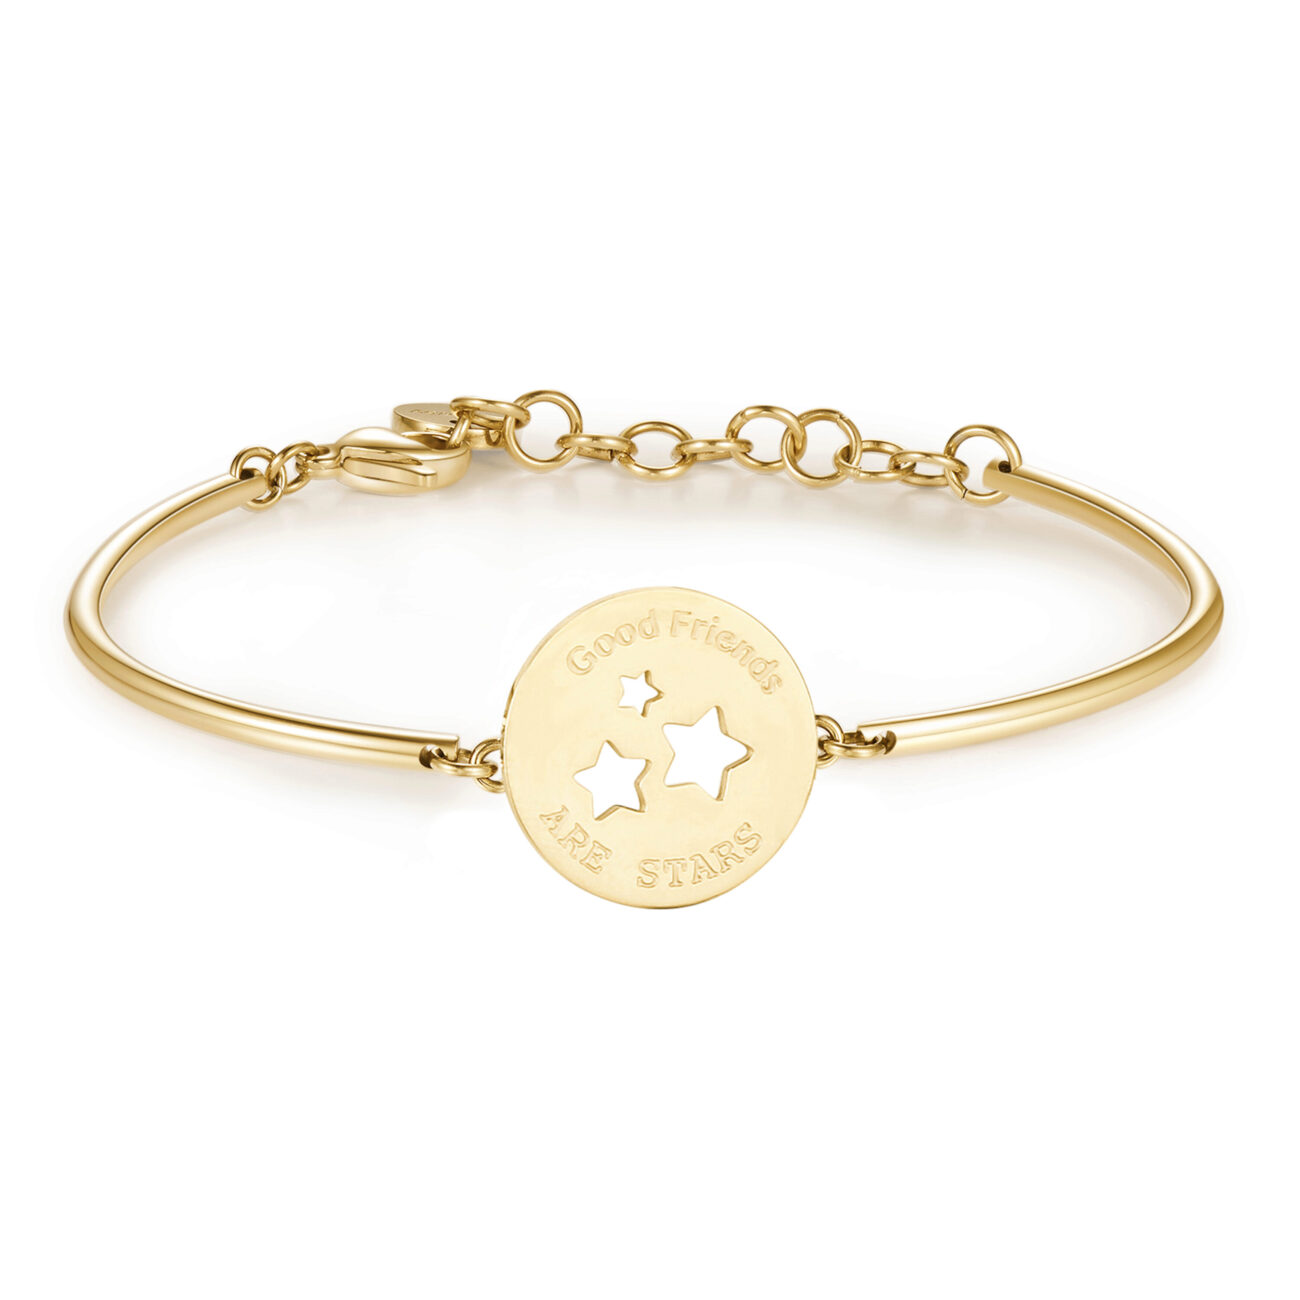 STARS: FRIENDSHIP, EMPATHY, HAPPINESSENGRAVED:Good friends are starsThey understand without you saying a word, are always on your side and make you laugh even when you don't want to. True friends shine like the stars.316L Stainless steel bracelet with gold PVD.